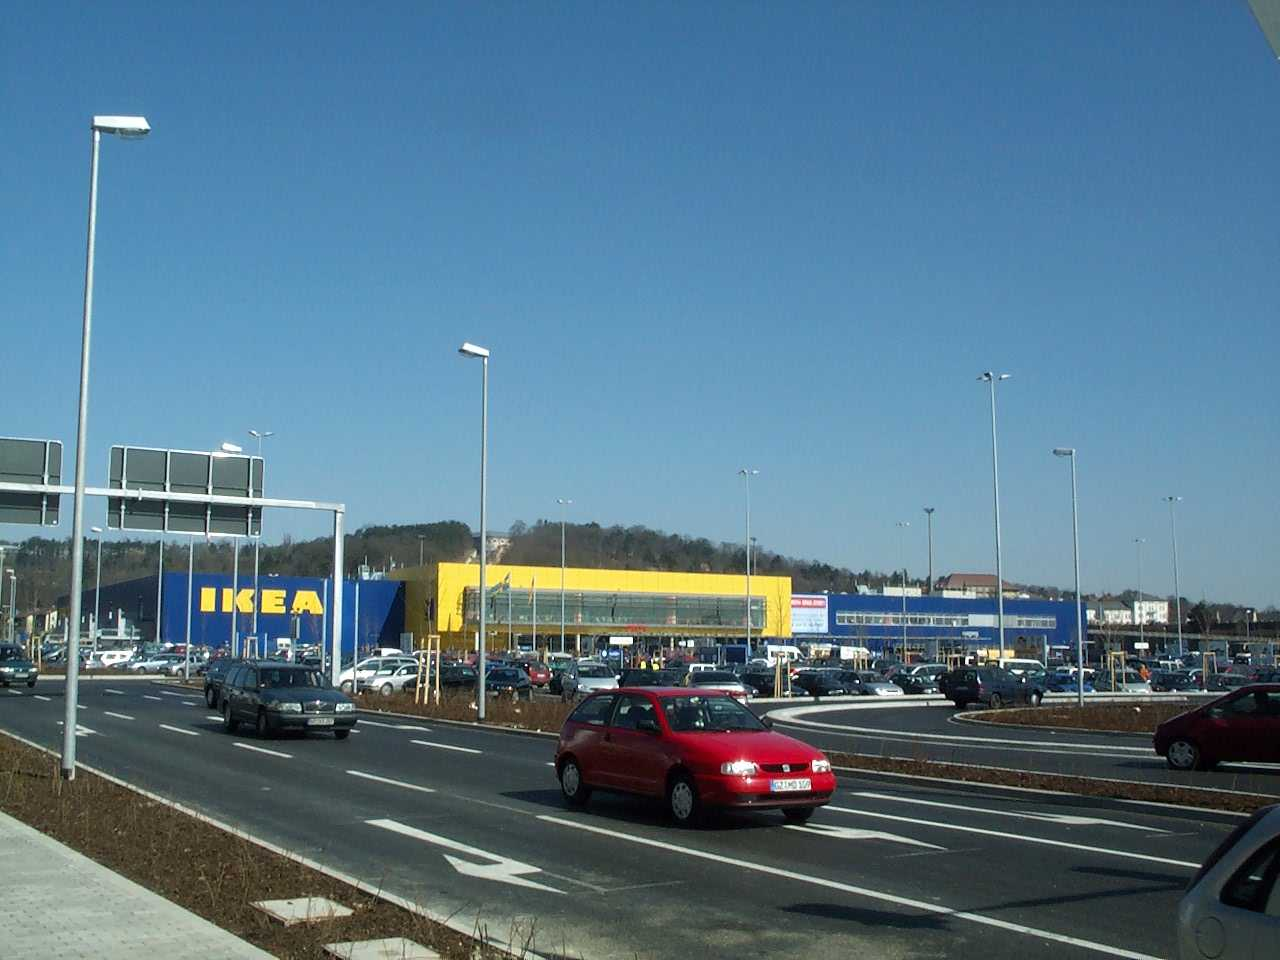 Tischfüsse Ikea eric s germany journal